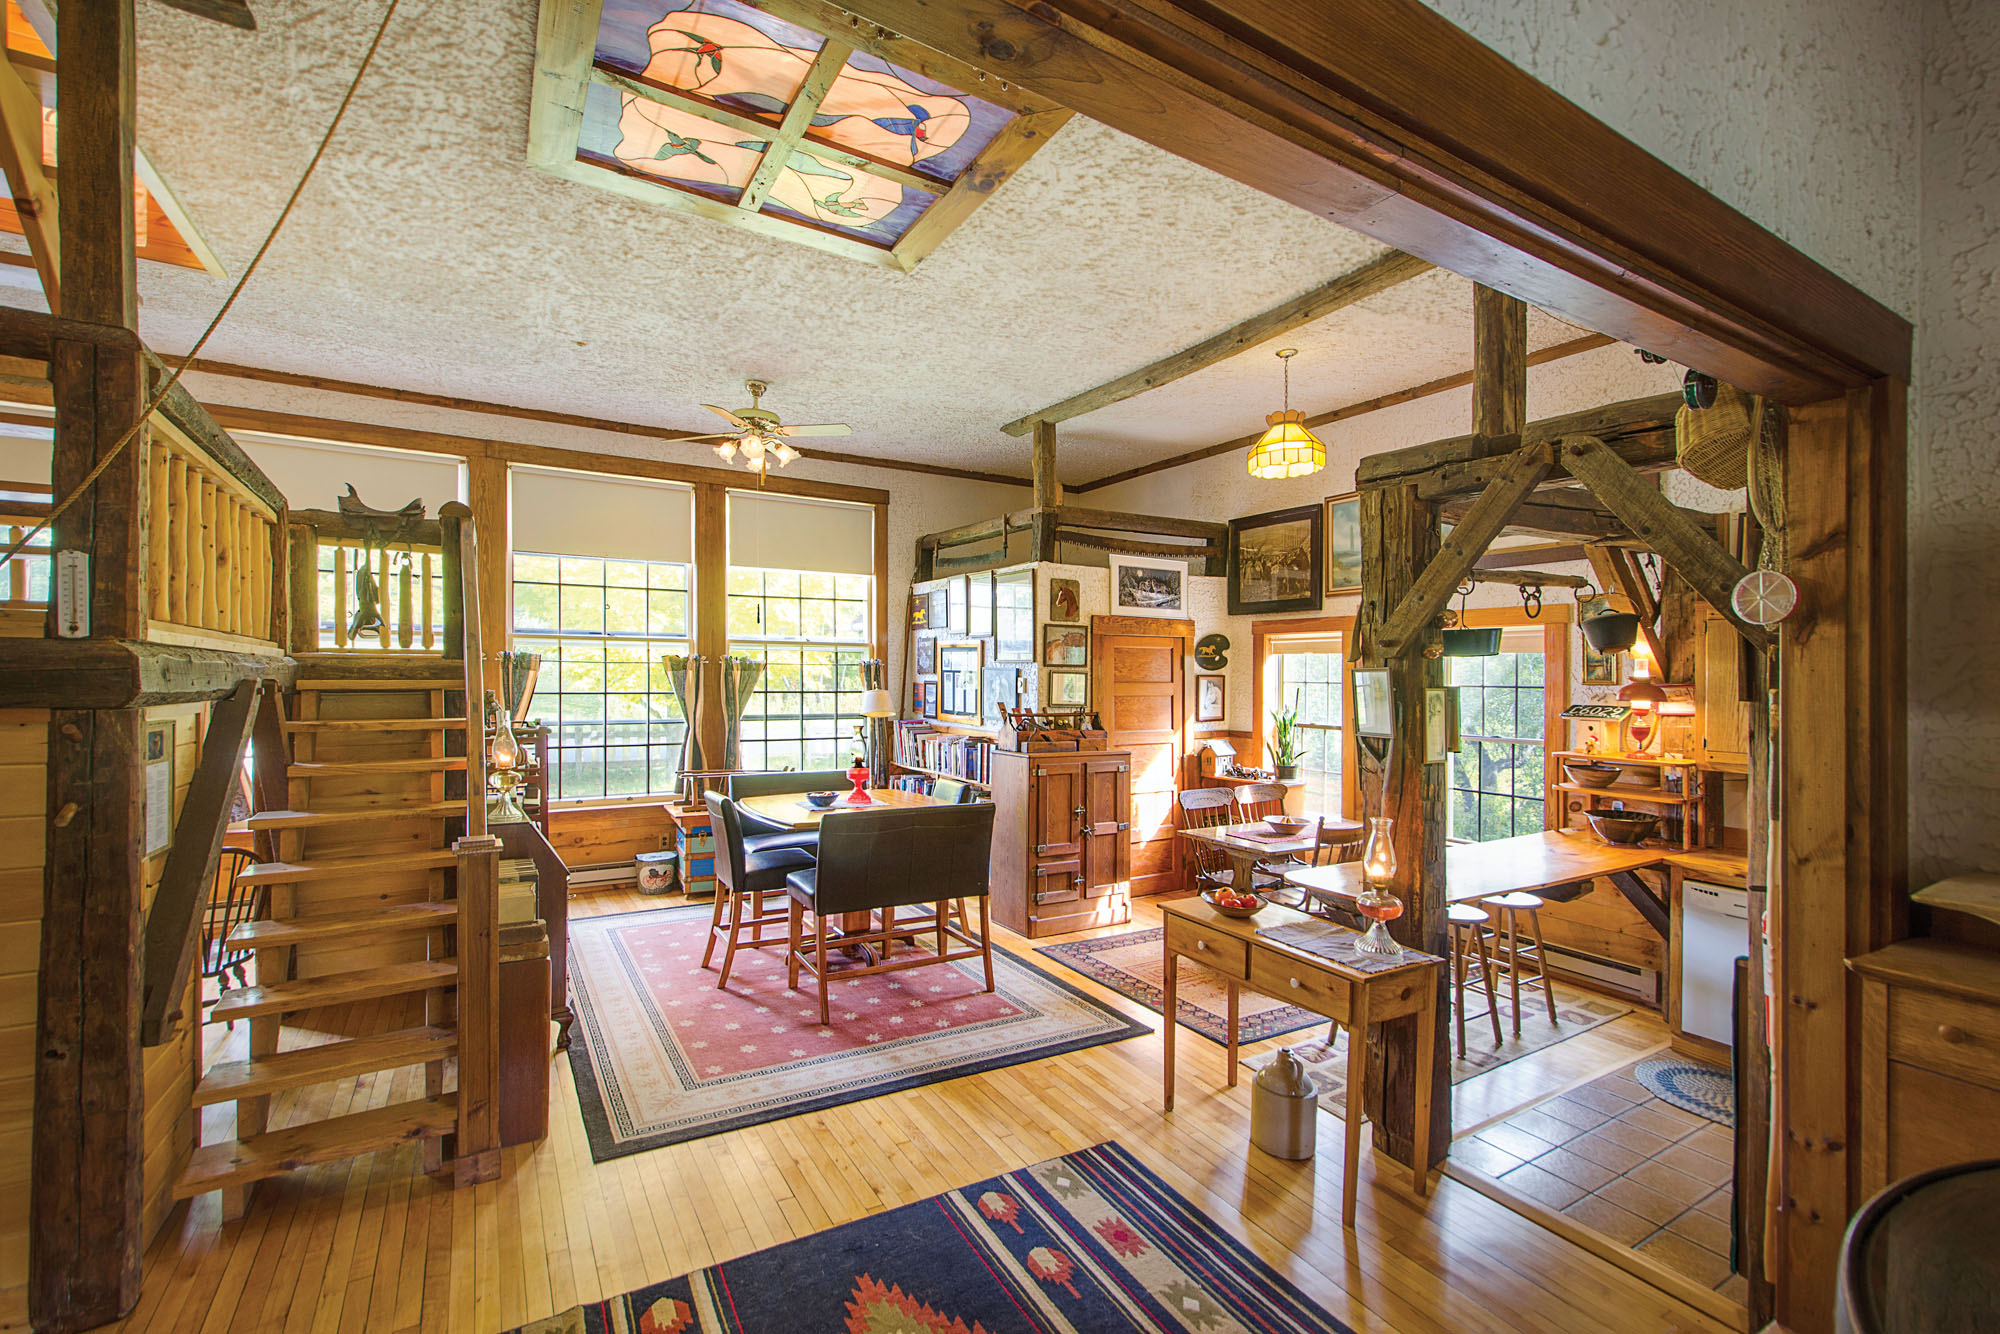 An Old Schoolhouse Converted Into A Home Old House